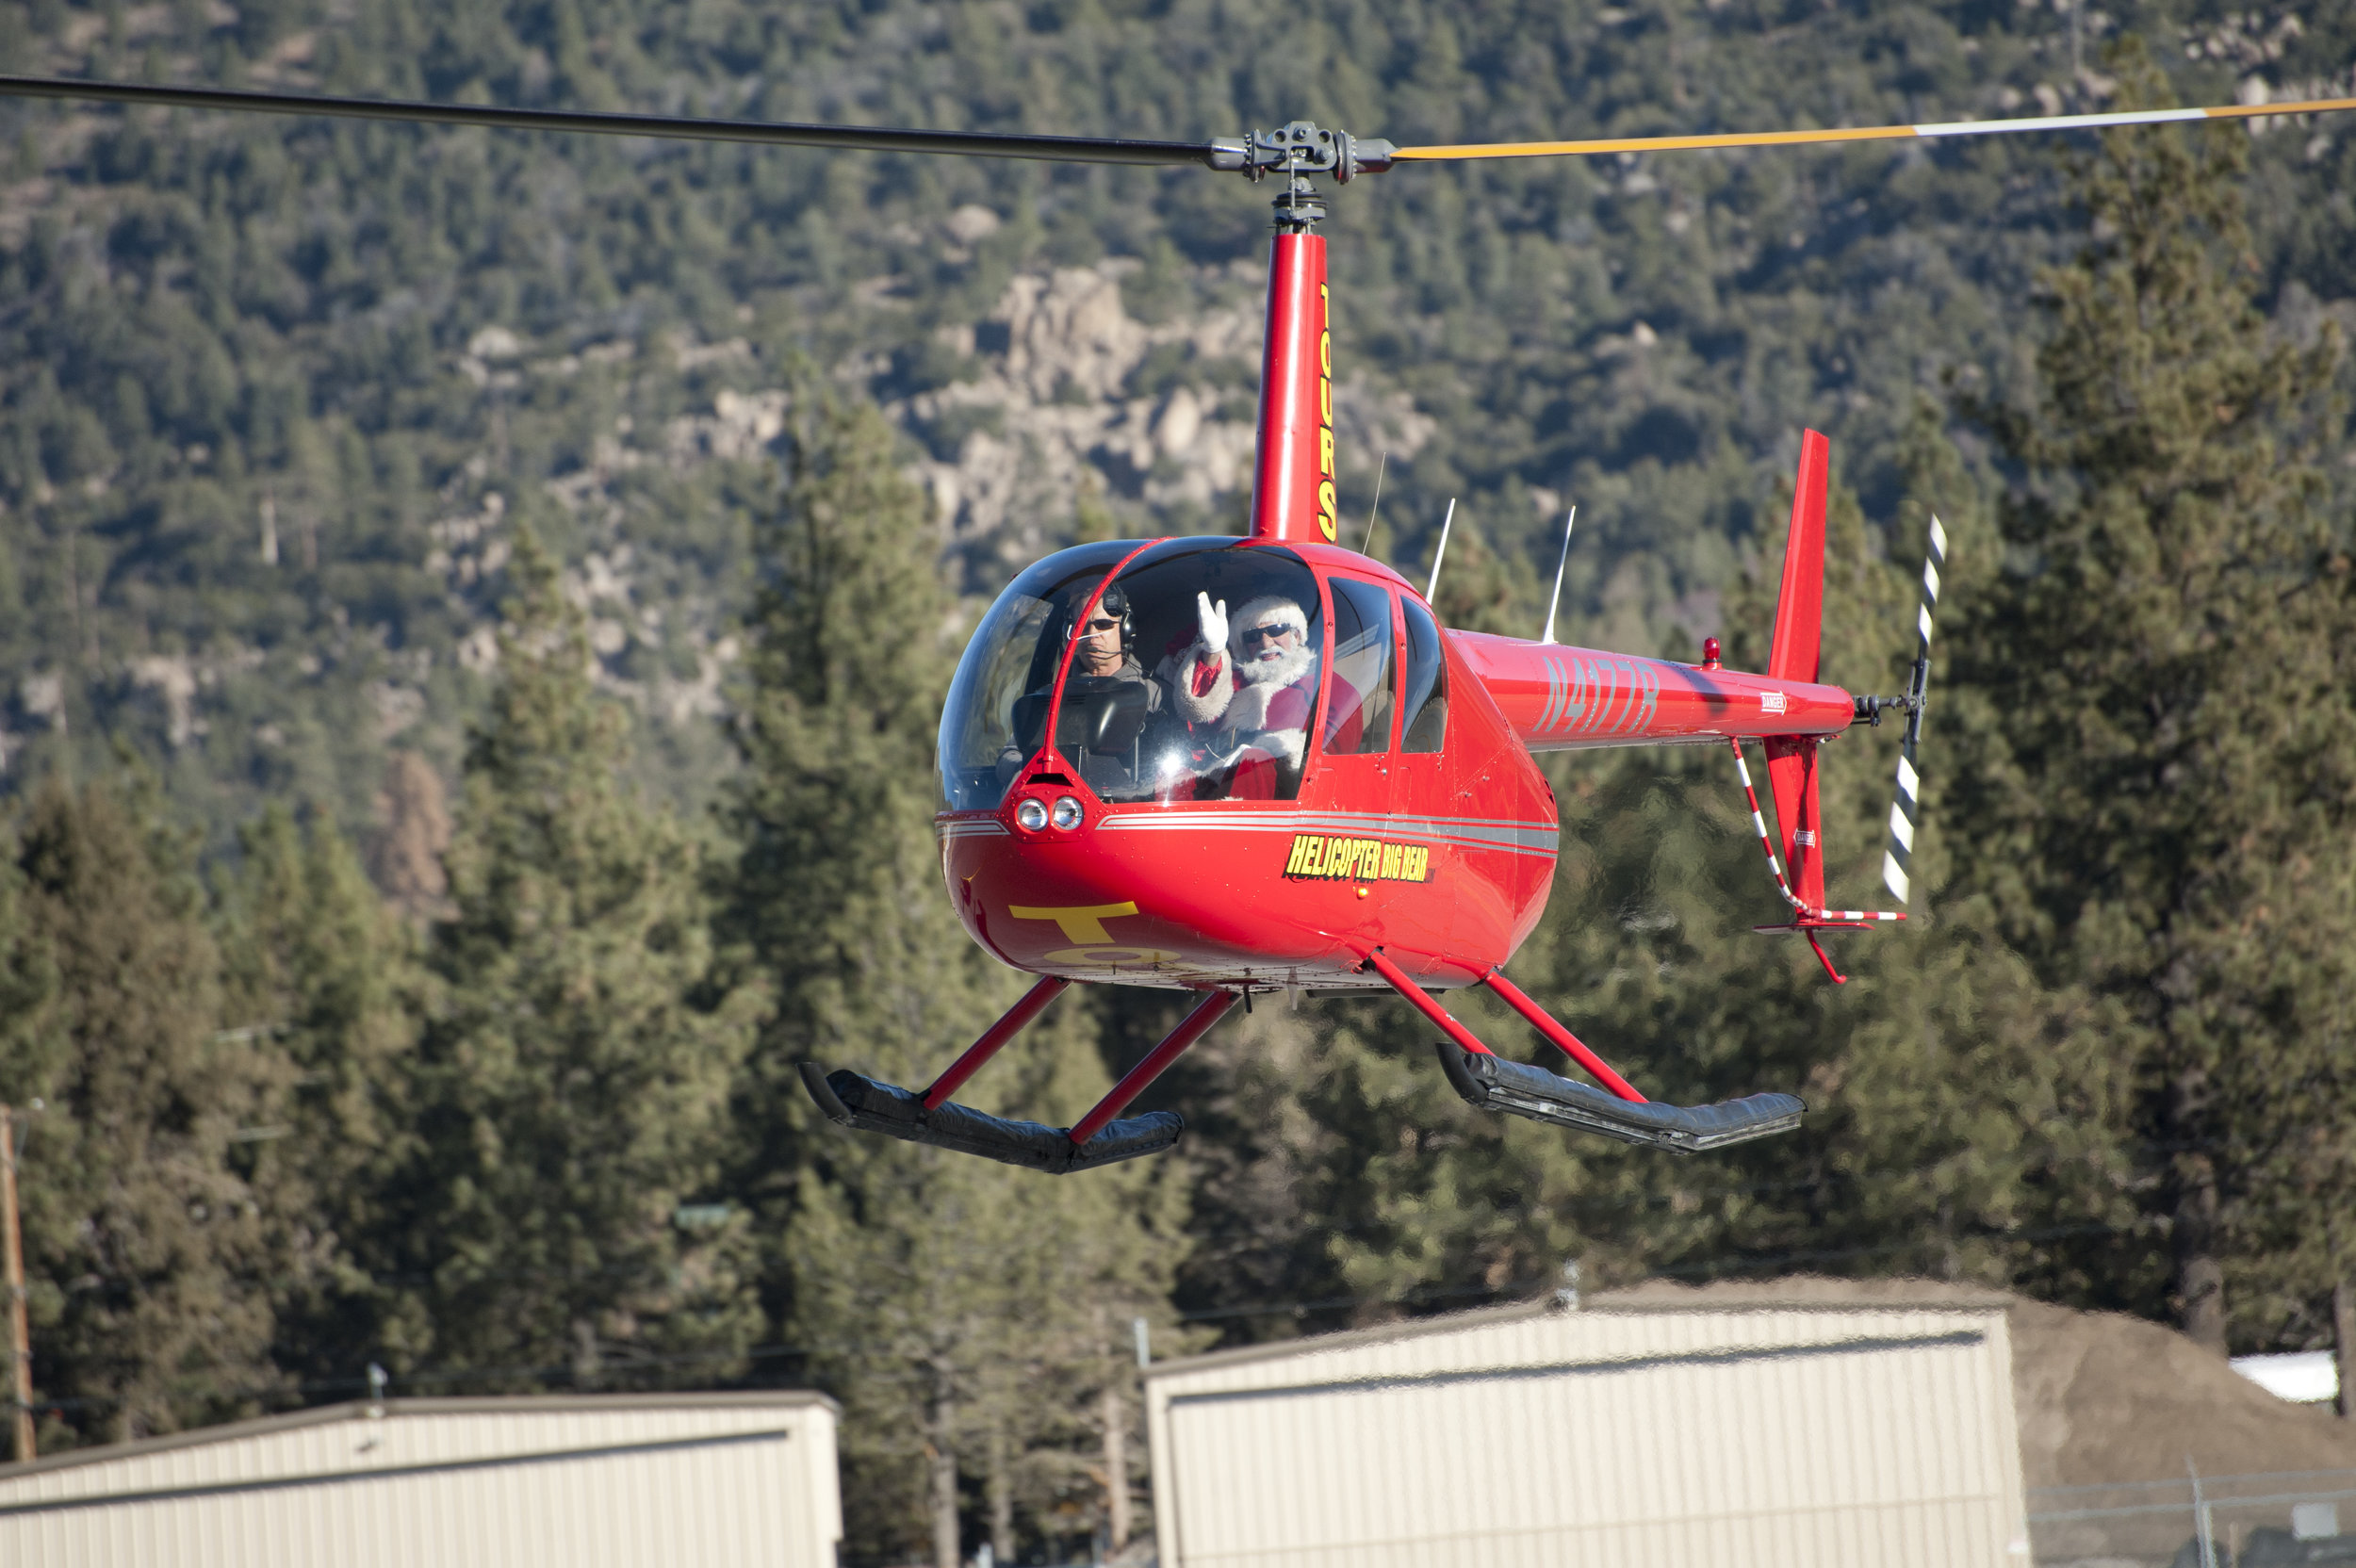 Santa descends toward the airport runway before Breakfast with Santa Nov. 26, 2016. In Big Bear, Santa doesn't come by sleigh, he gets a ride in a helicopter.